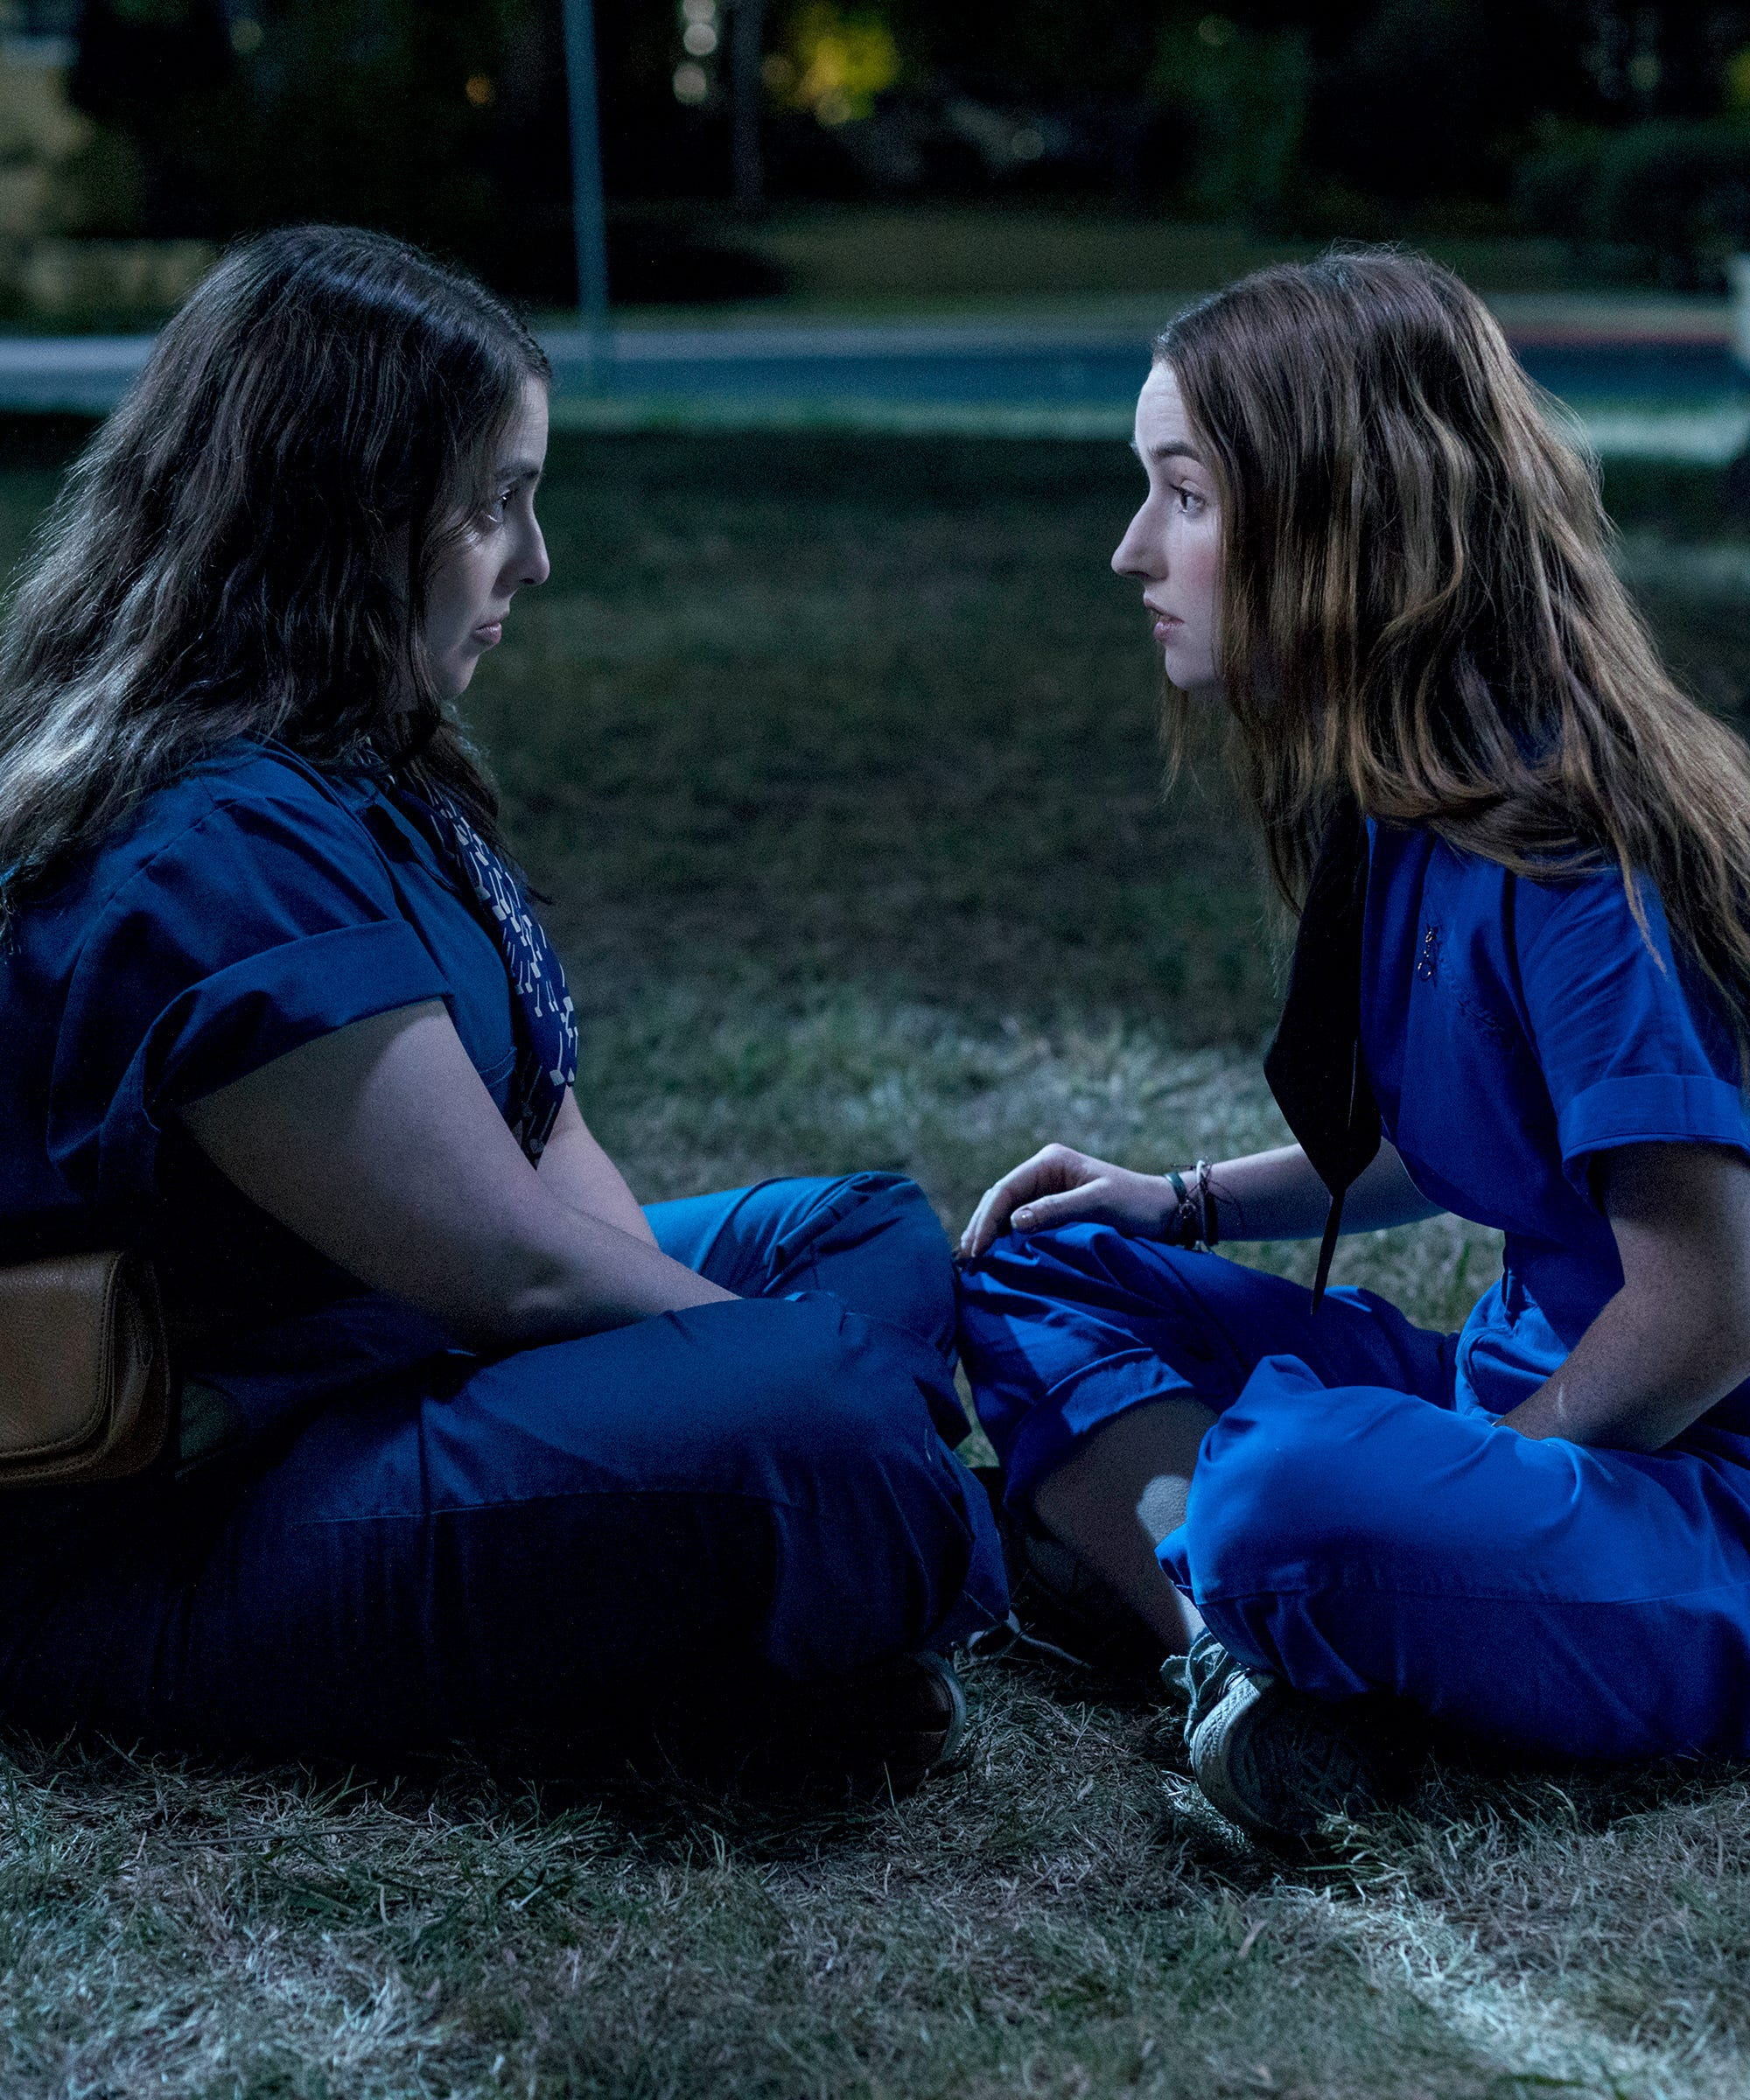 The Booksmart Cast's Real Ages (And Astrological Signs, Because Why Not)